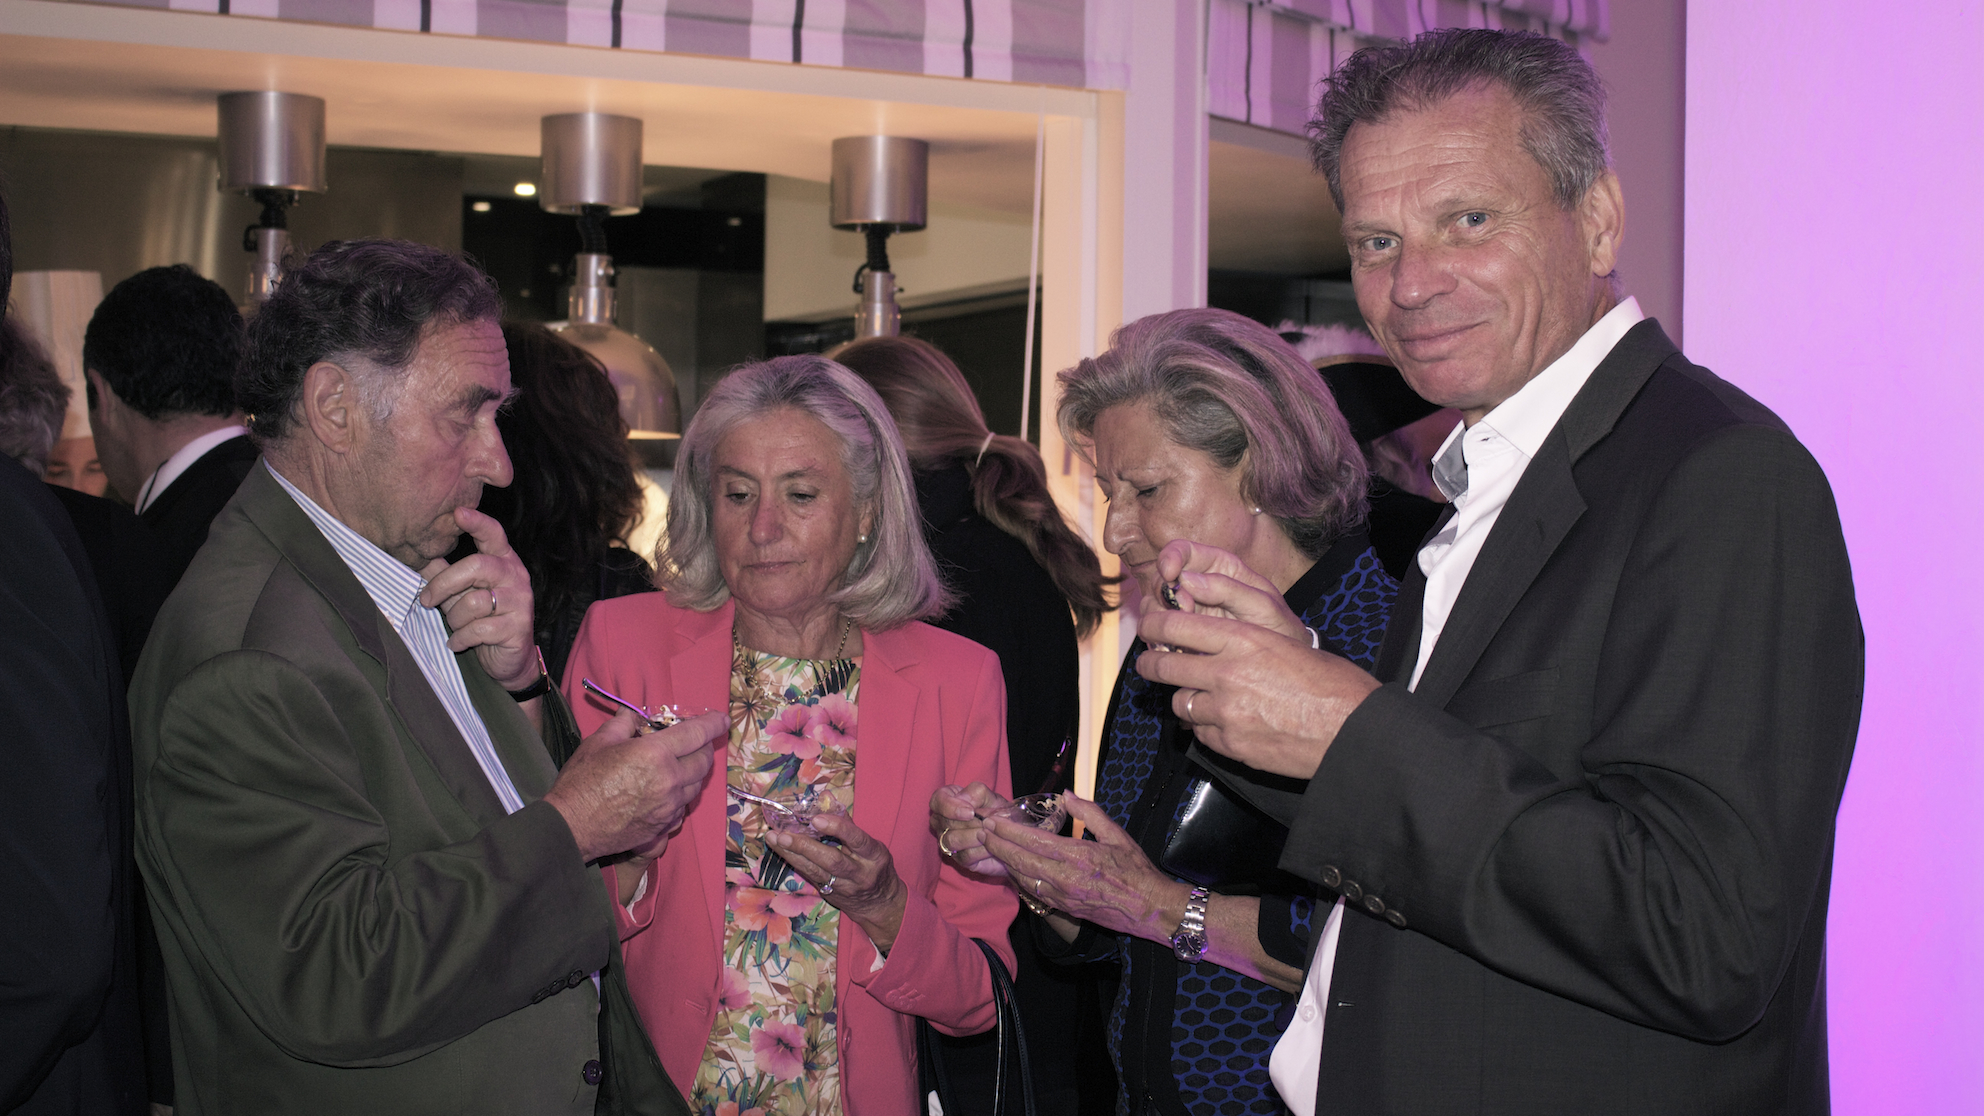 INAUGURATION-GRAND-HOTEL-saint-jean-de-luz-agence-evenementielle-pays-basque-le-cercle-evenements- 505